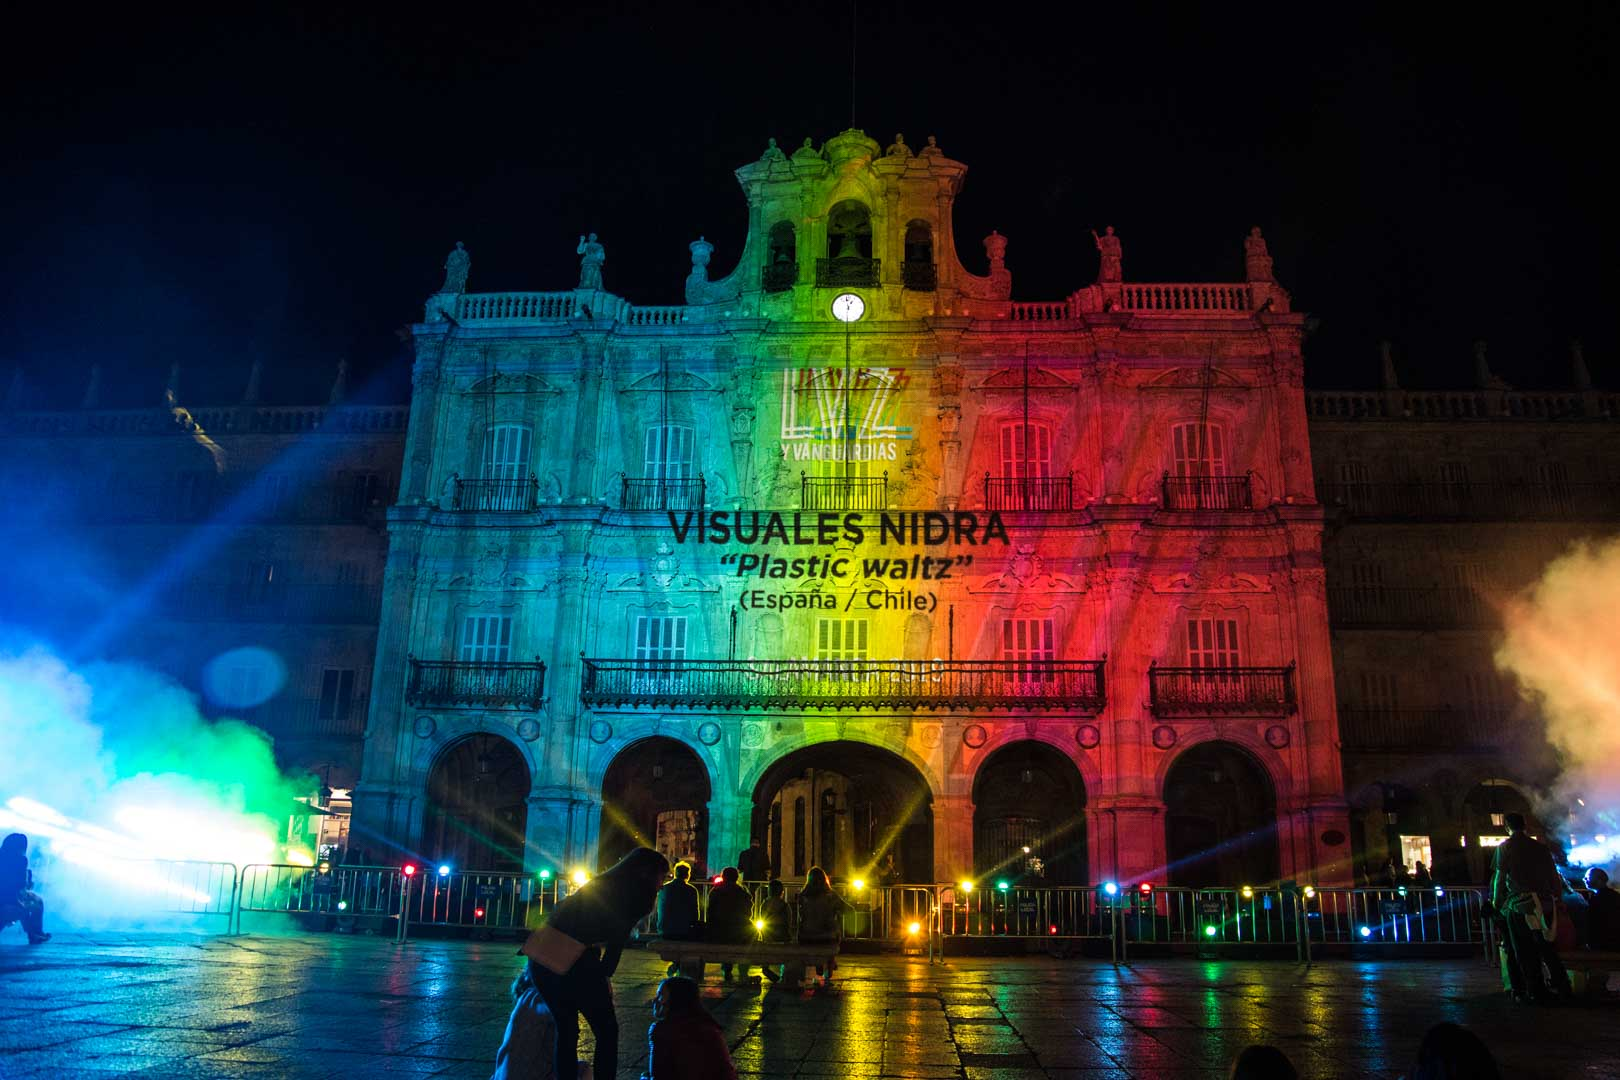 Visuales Nidra Festival Luz y Vanguardias Salamanca 2019 España Video Mapping